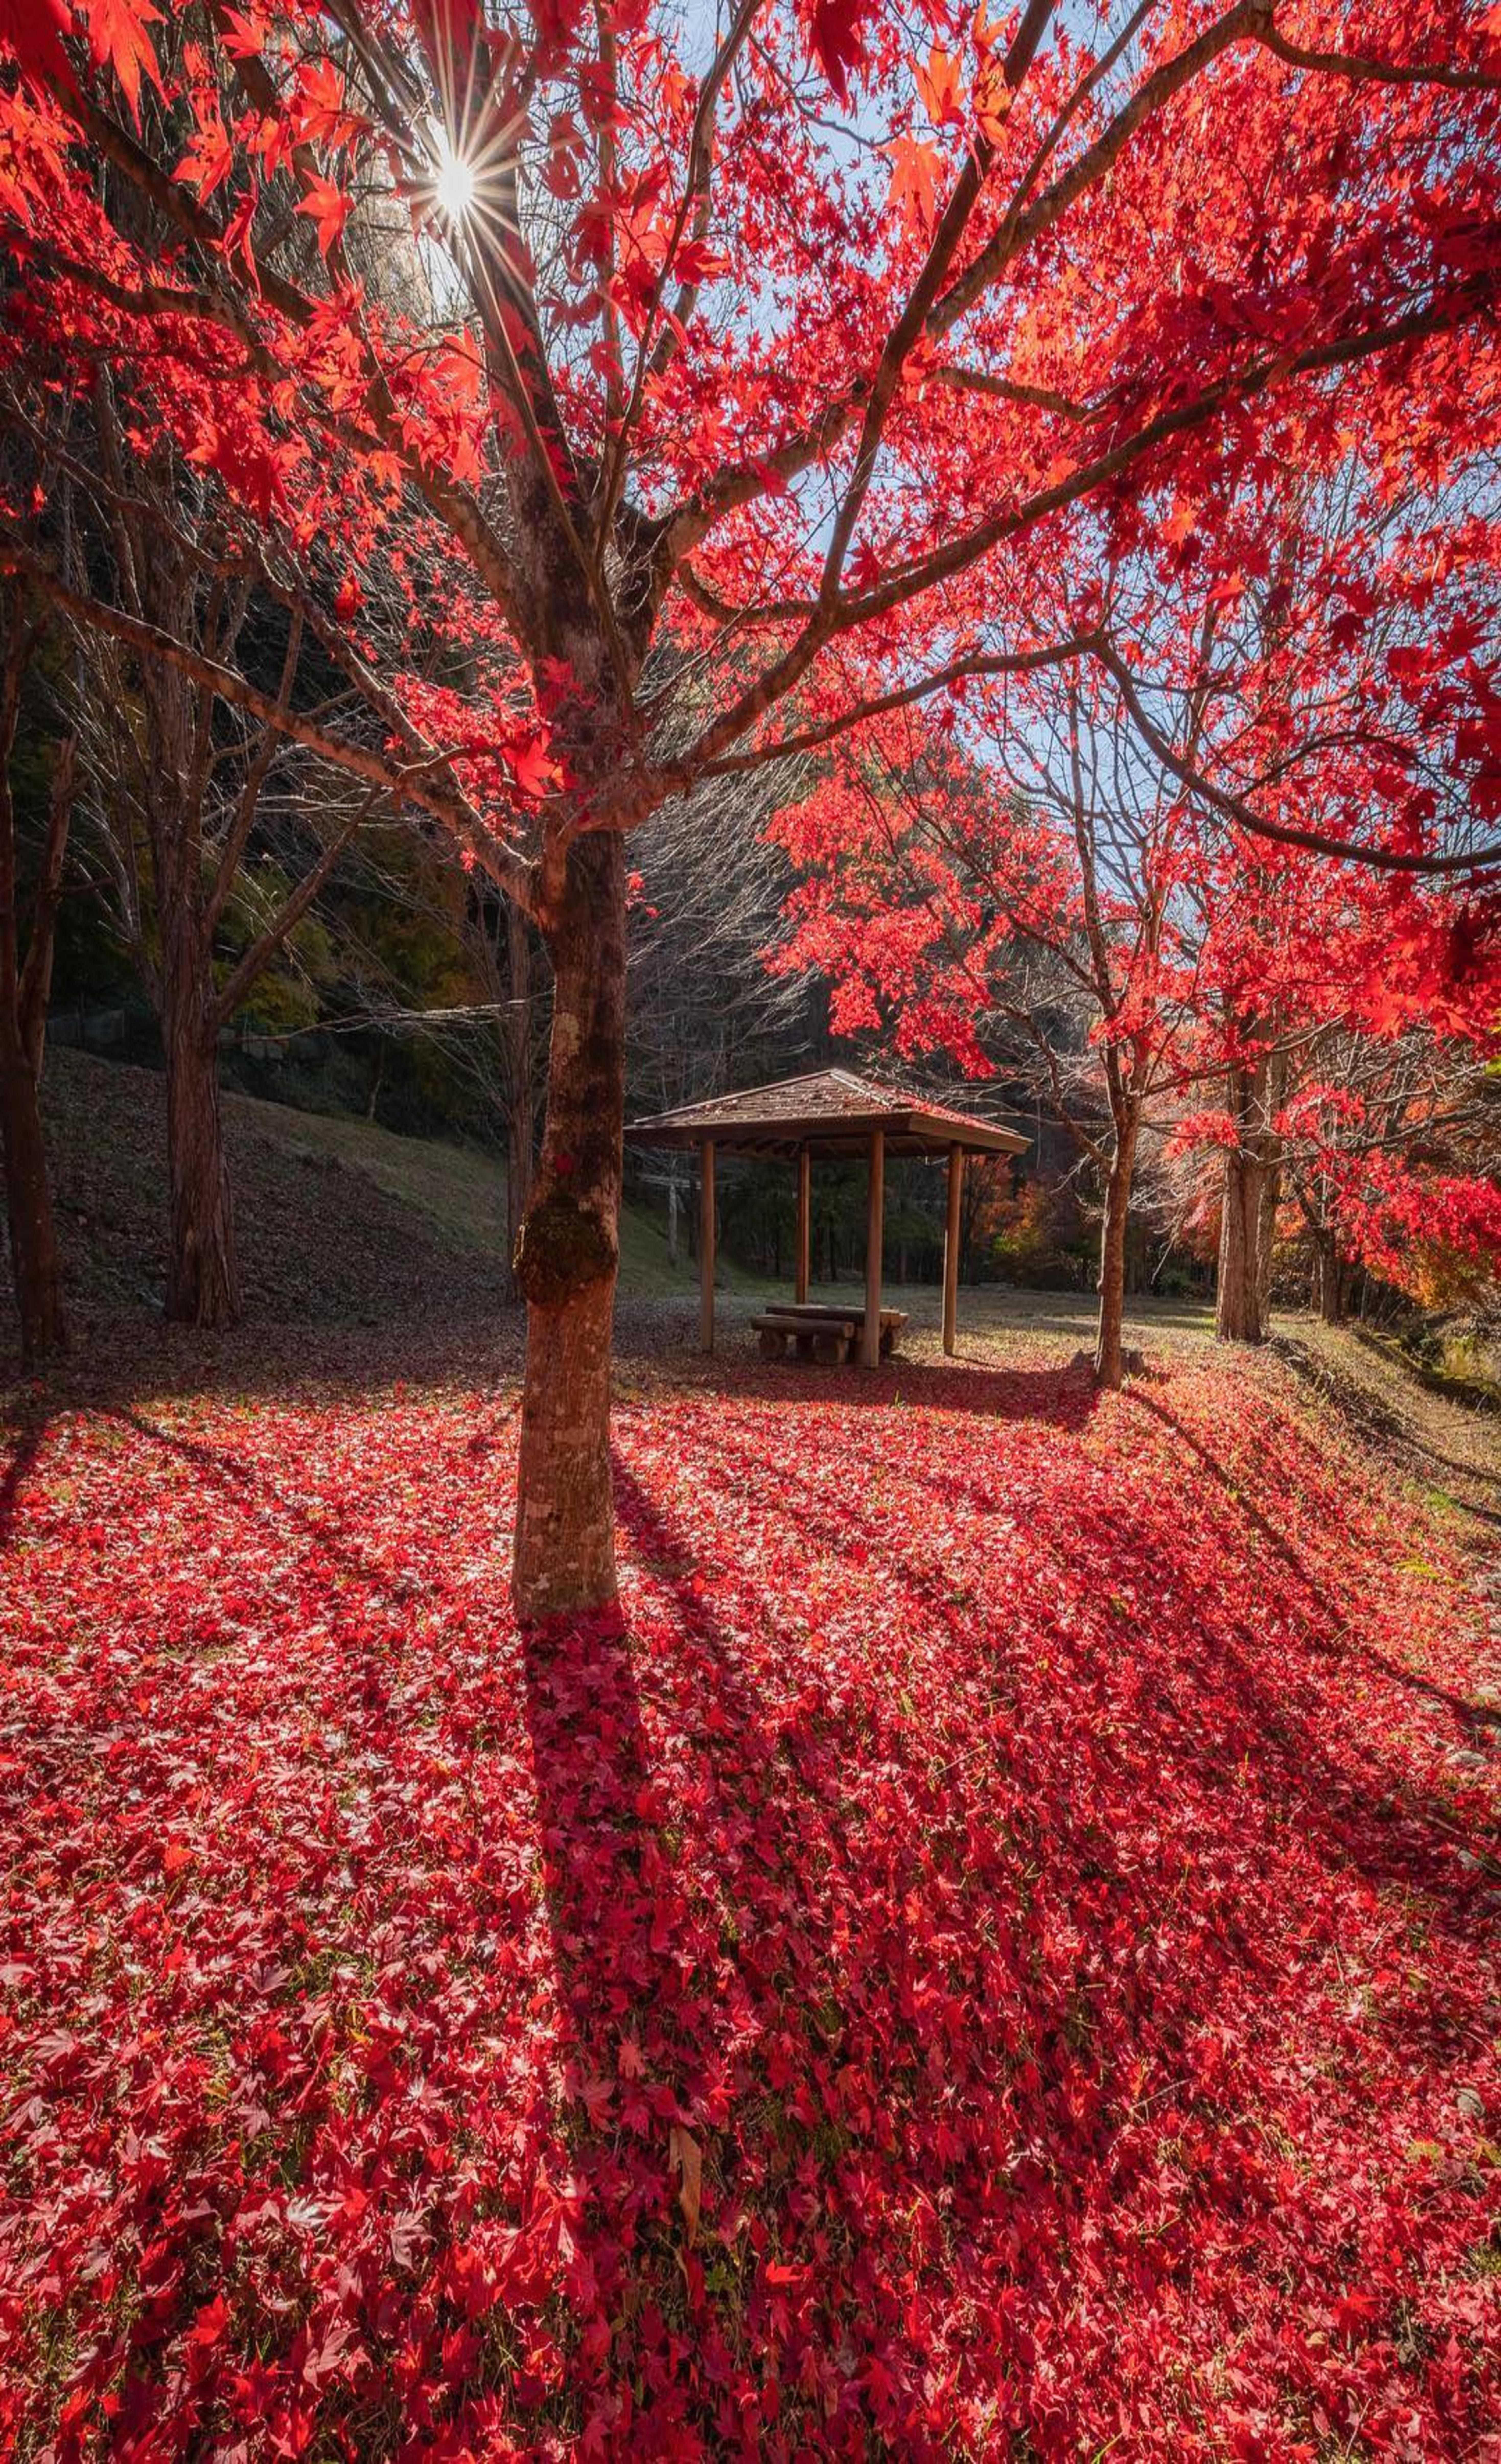 Pin By Christy Higby On Nature Japan Landscape Landscape Photography Tutorial Landscape Photography